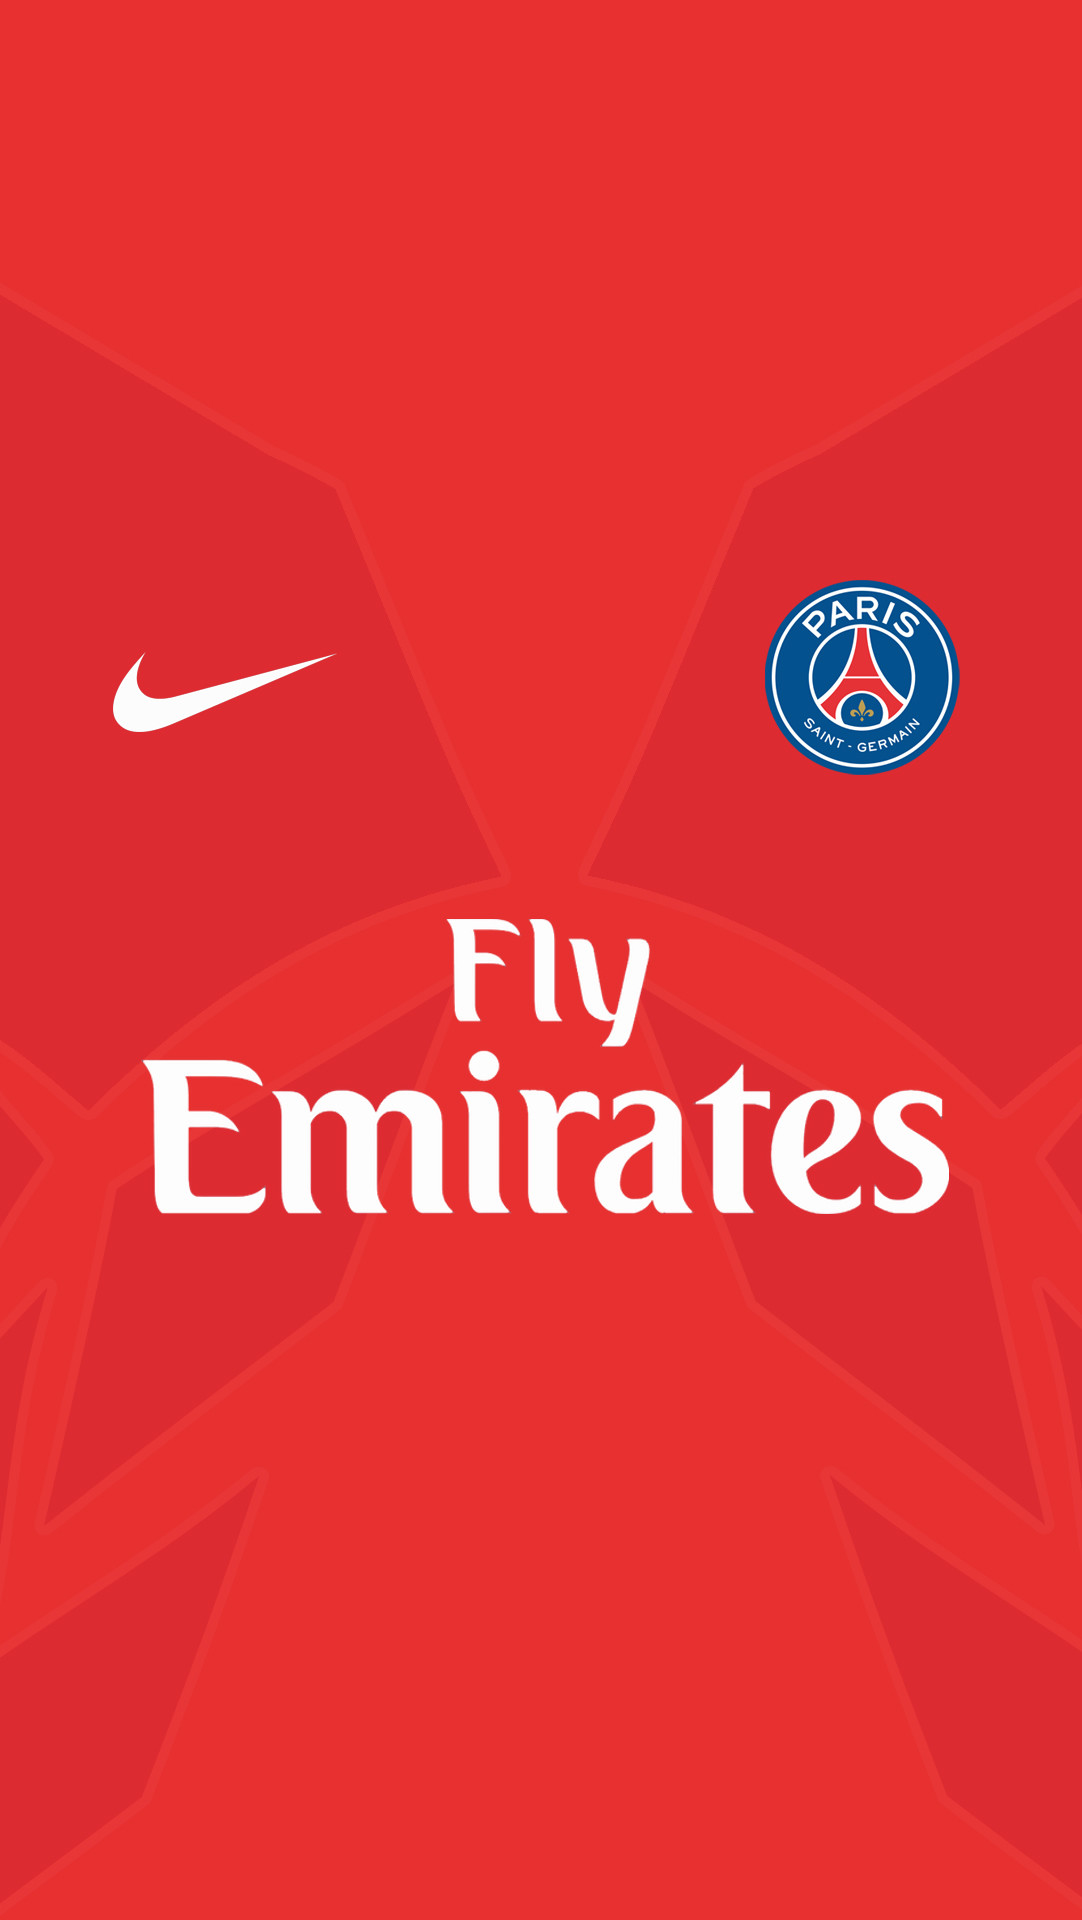 1920x1233 Paris Saint Germain Psg Nike Football Form David Beckham Face Men Section